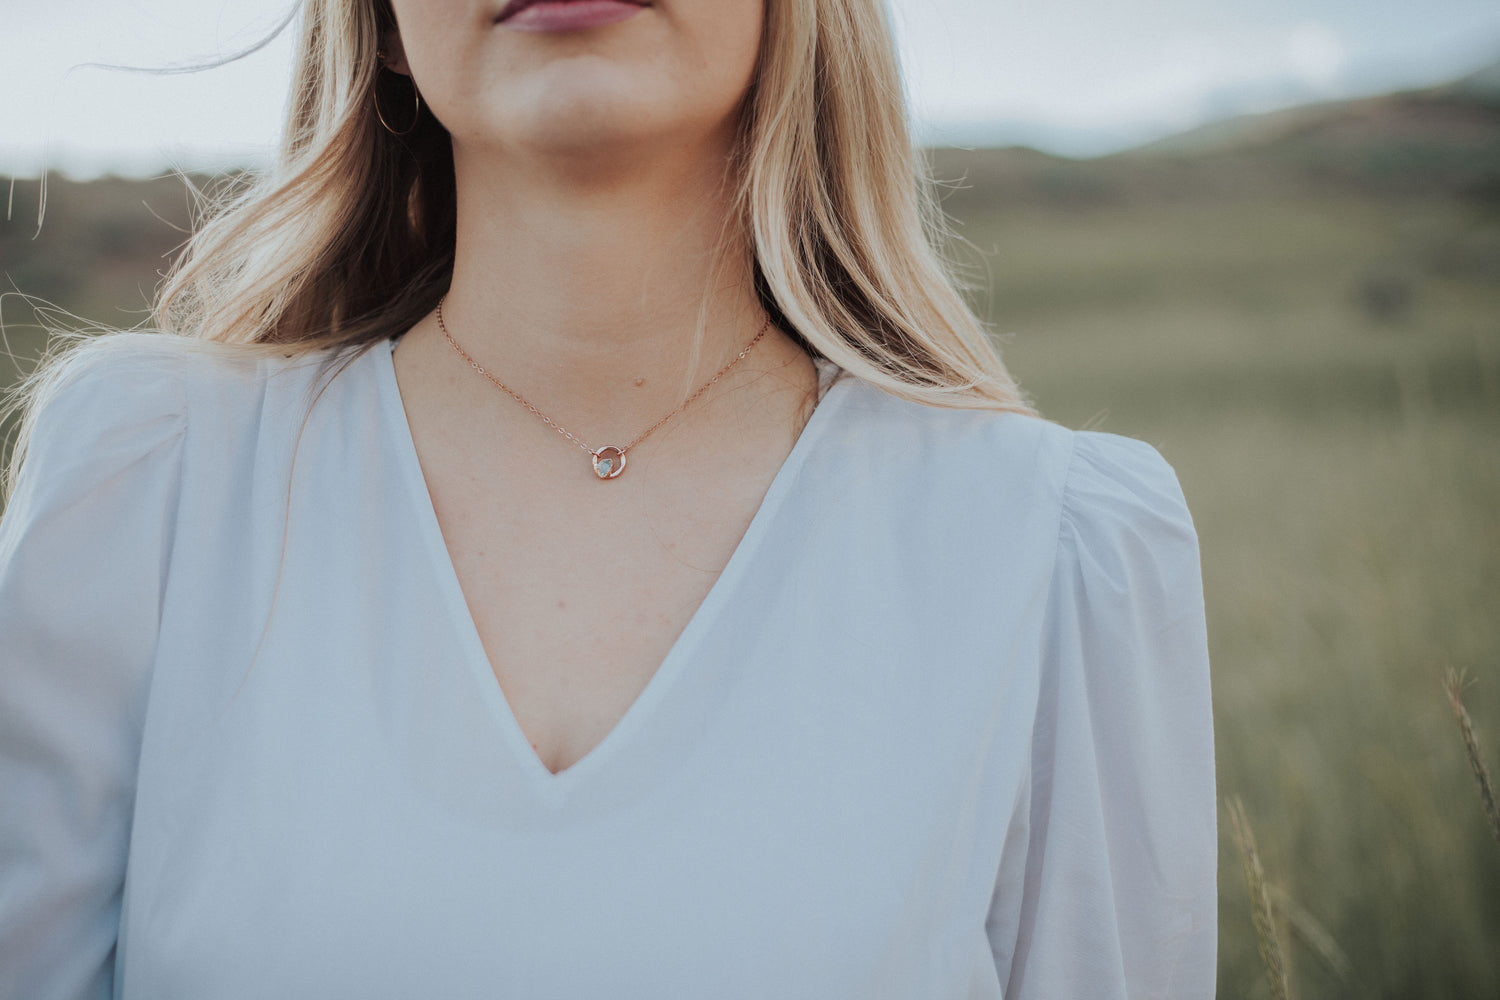 September Moment Necklace // Rose Gold, Gold, or Silver